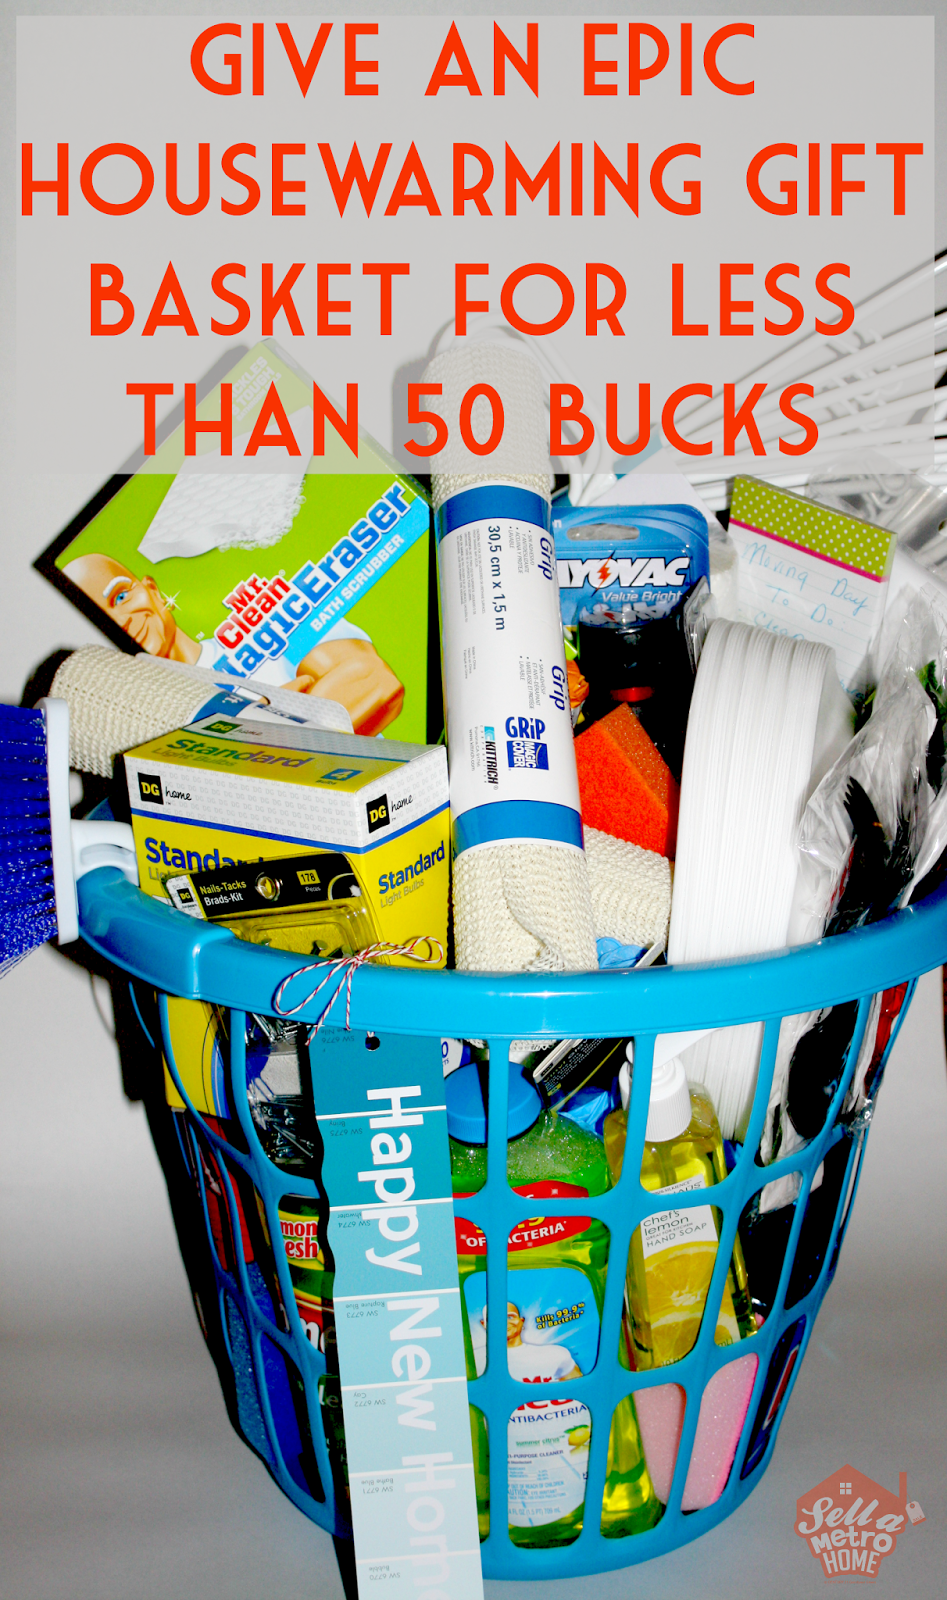 Nice This Housewarming Gift Basket Costs Less Than $50 To Make, Is Filled With  Useful Items